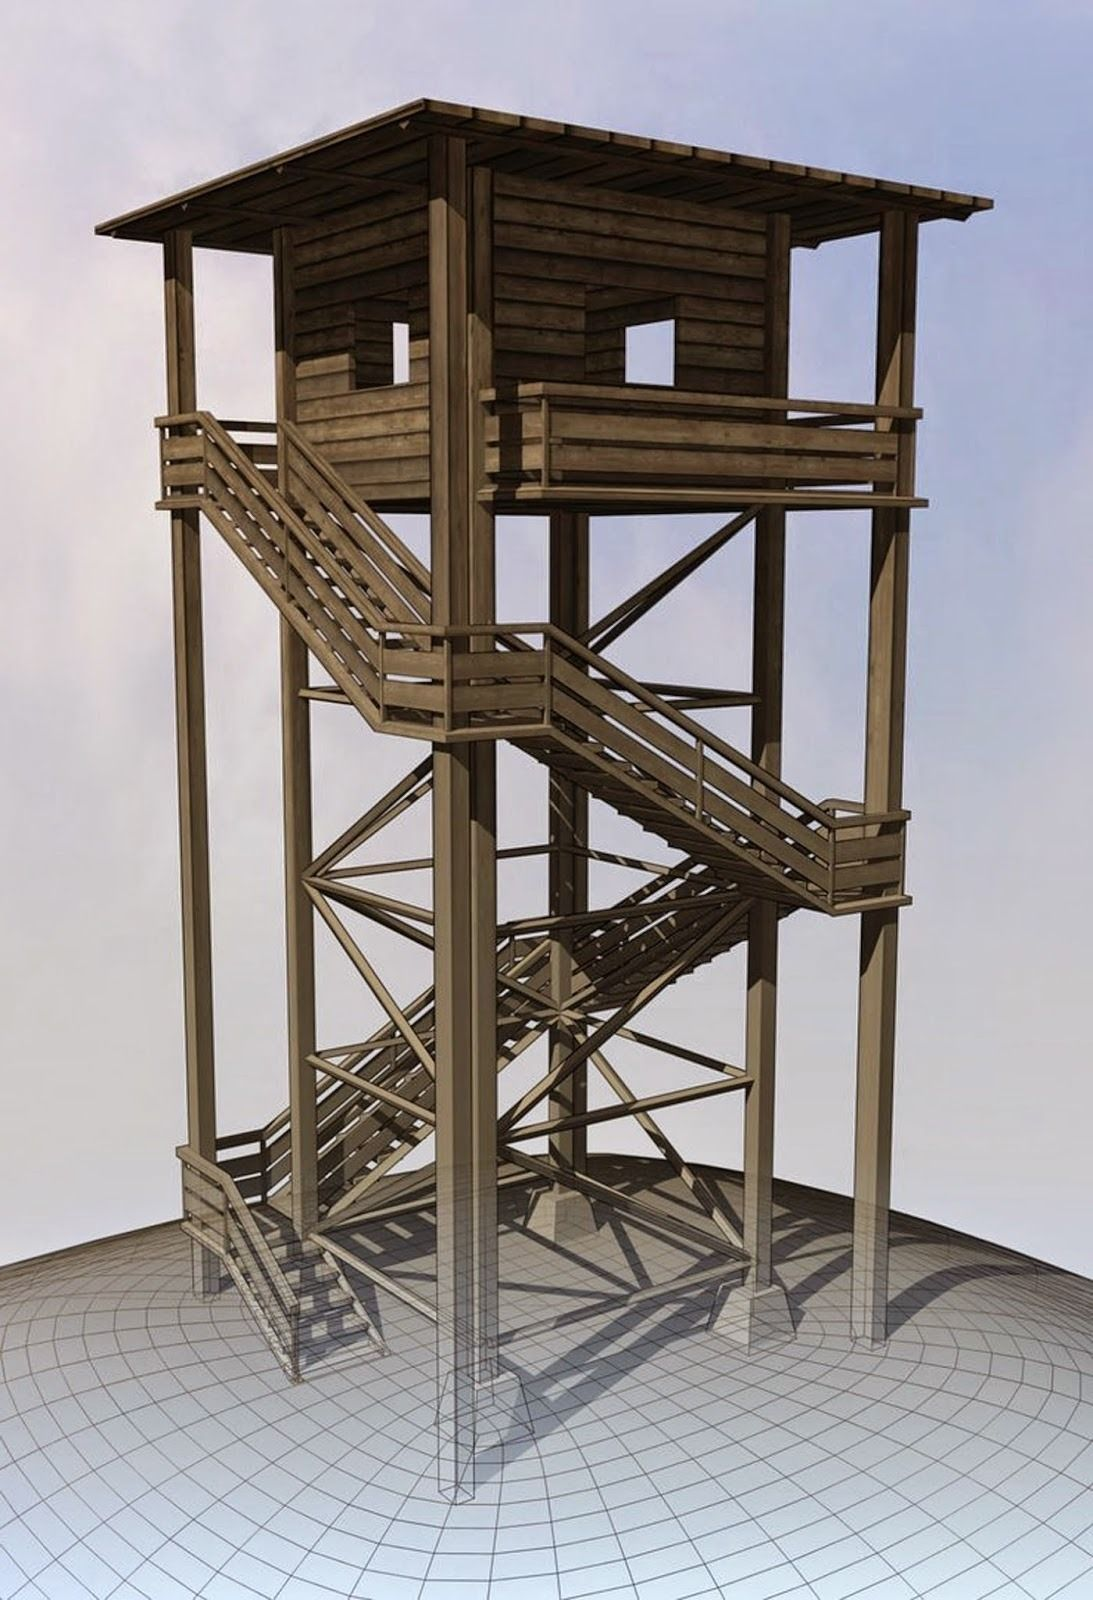 Watch Tower made of Wood